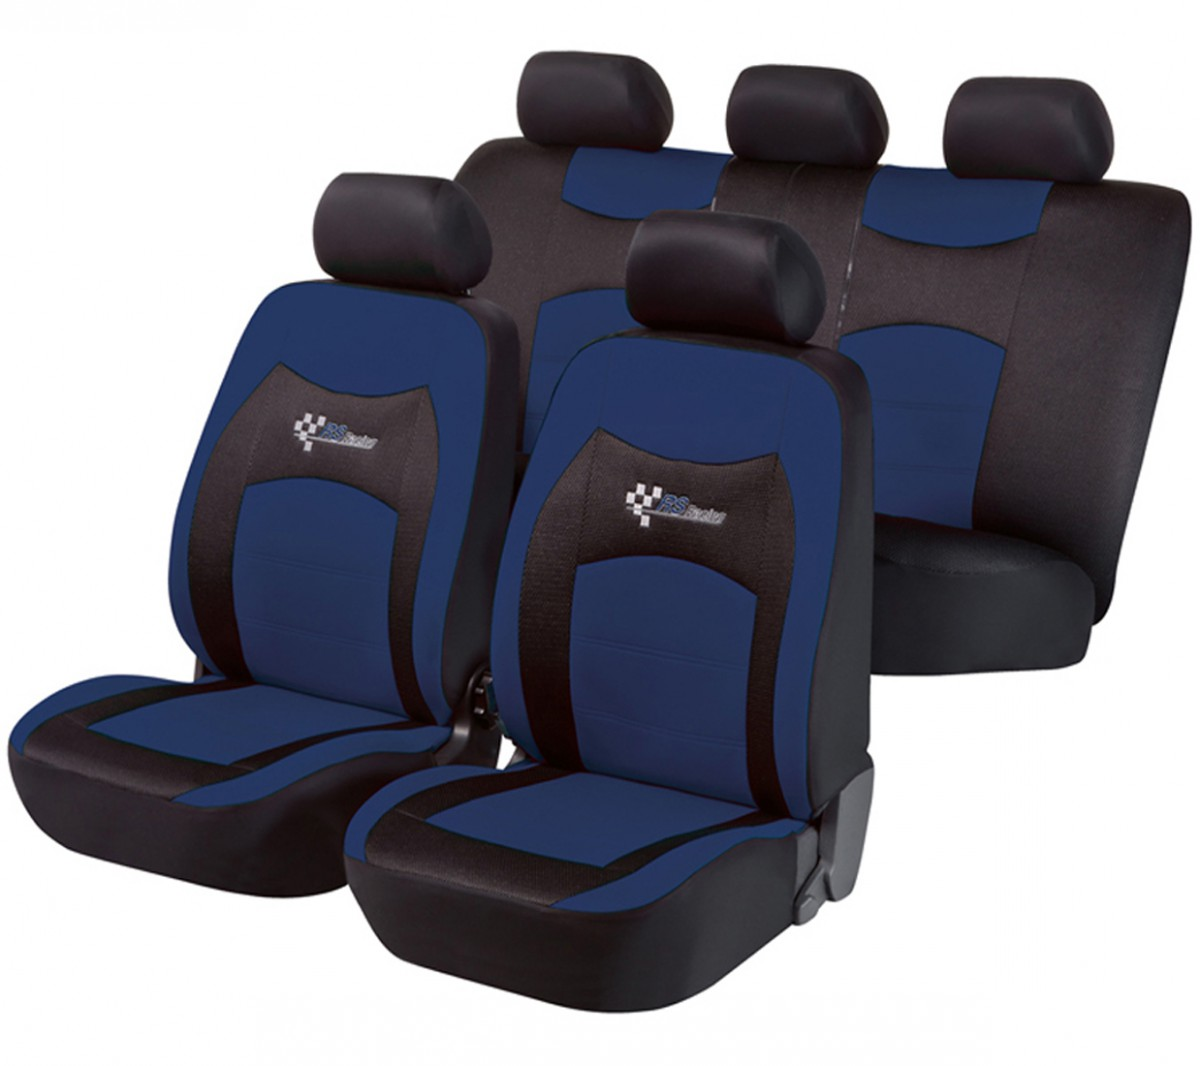 toyota landcruiser housse si ge auto kit complet noir bleu. Black Bedroom Furniture Sets. Home Design Ideas